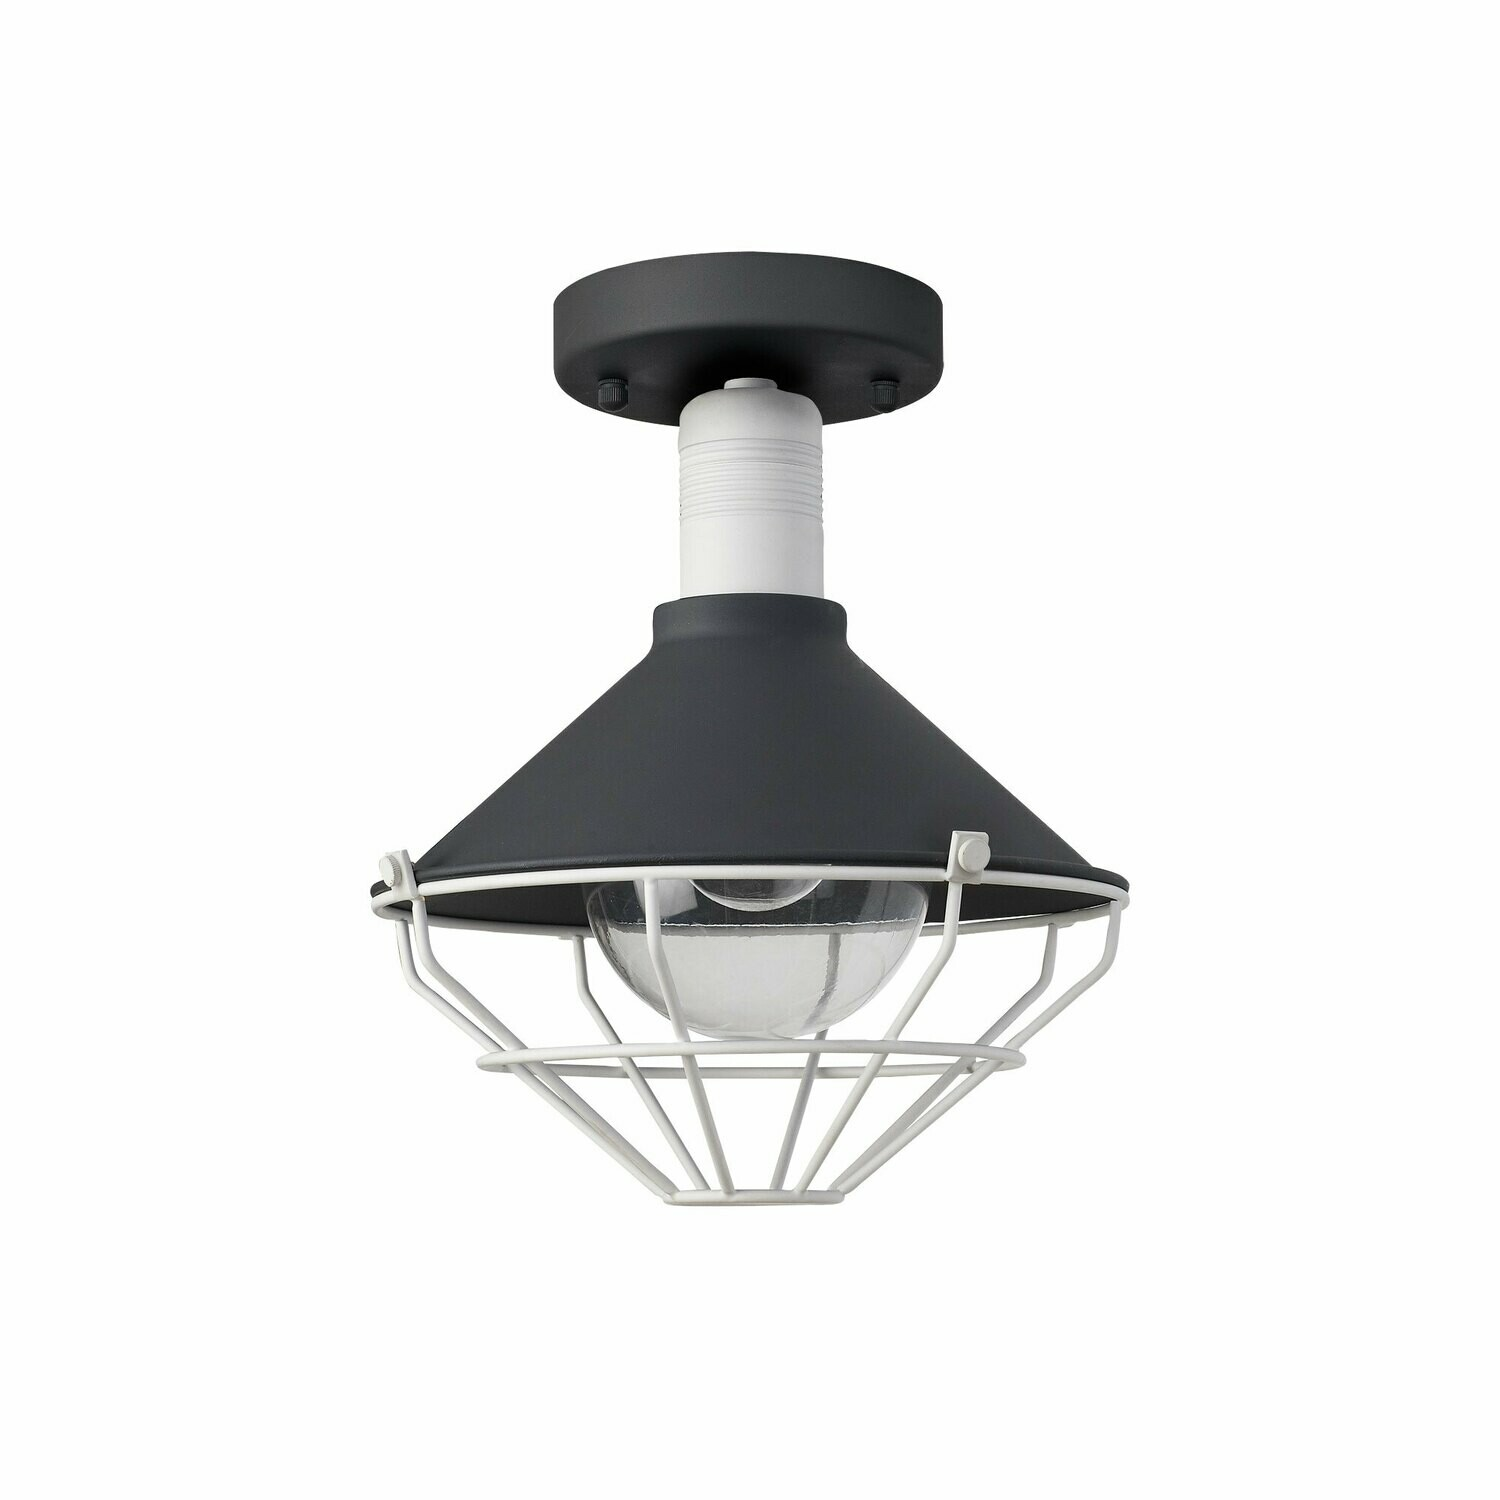 Danica Semi-Flush Ceiling, 1 Light E27, IP65, Anthracite/Matt White